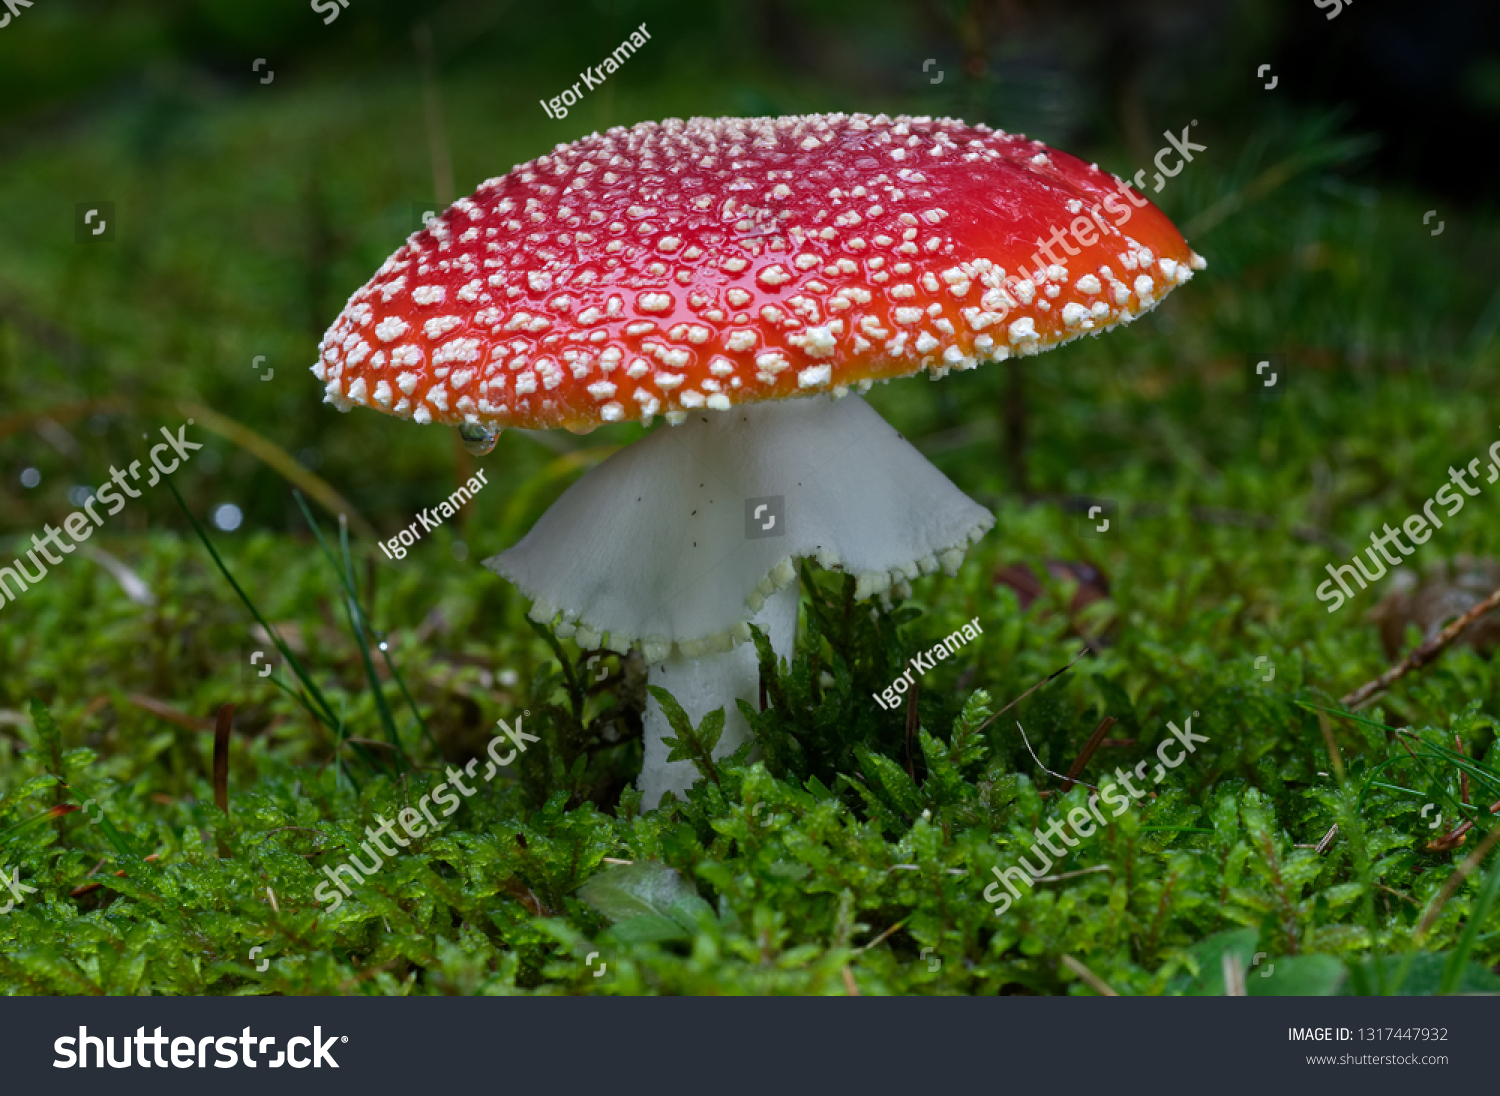 stock-photo-fly-agaric-amanita-muscaria-